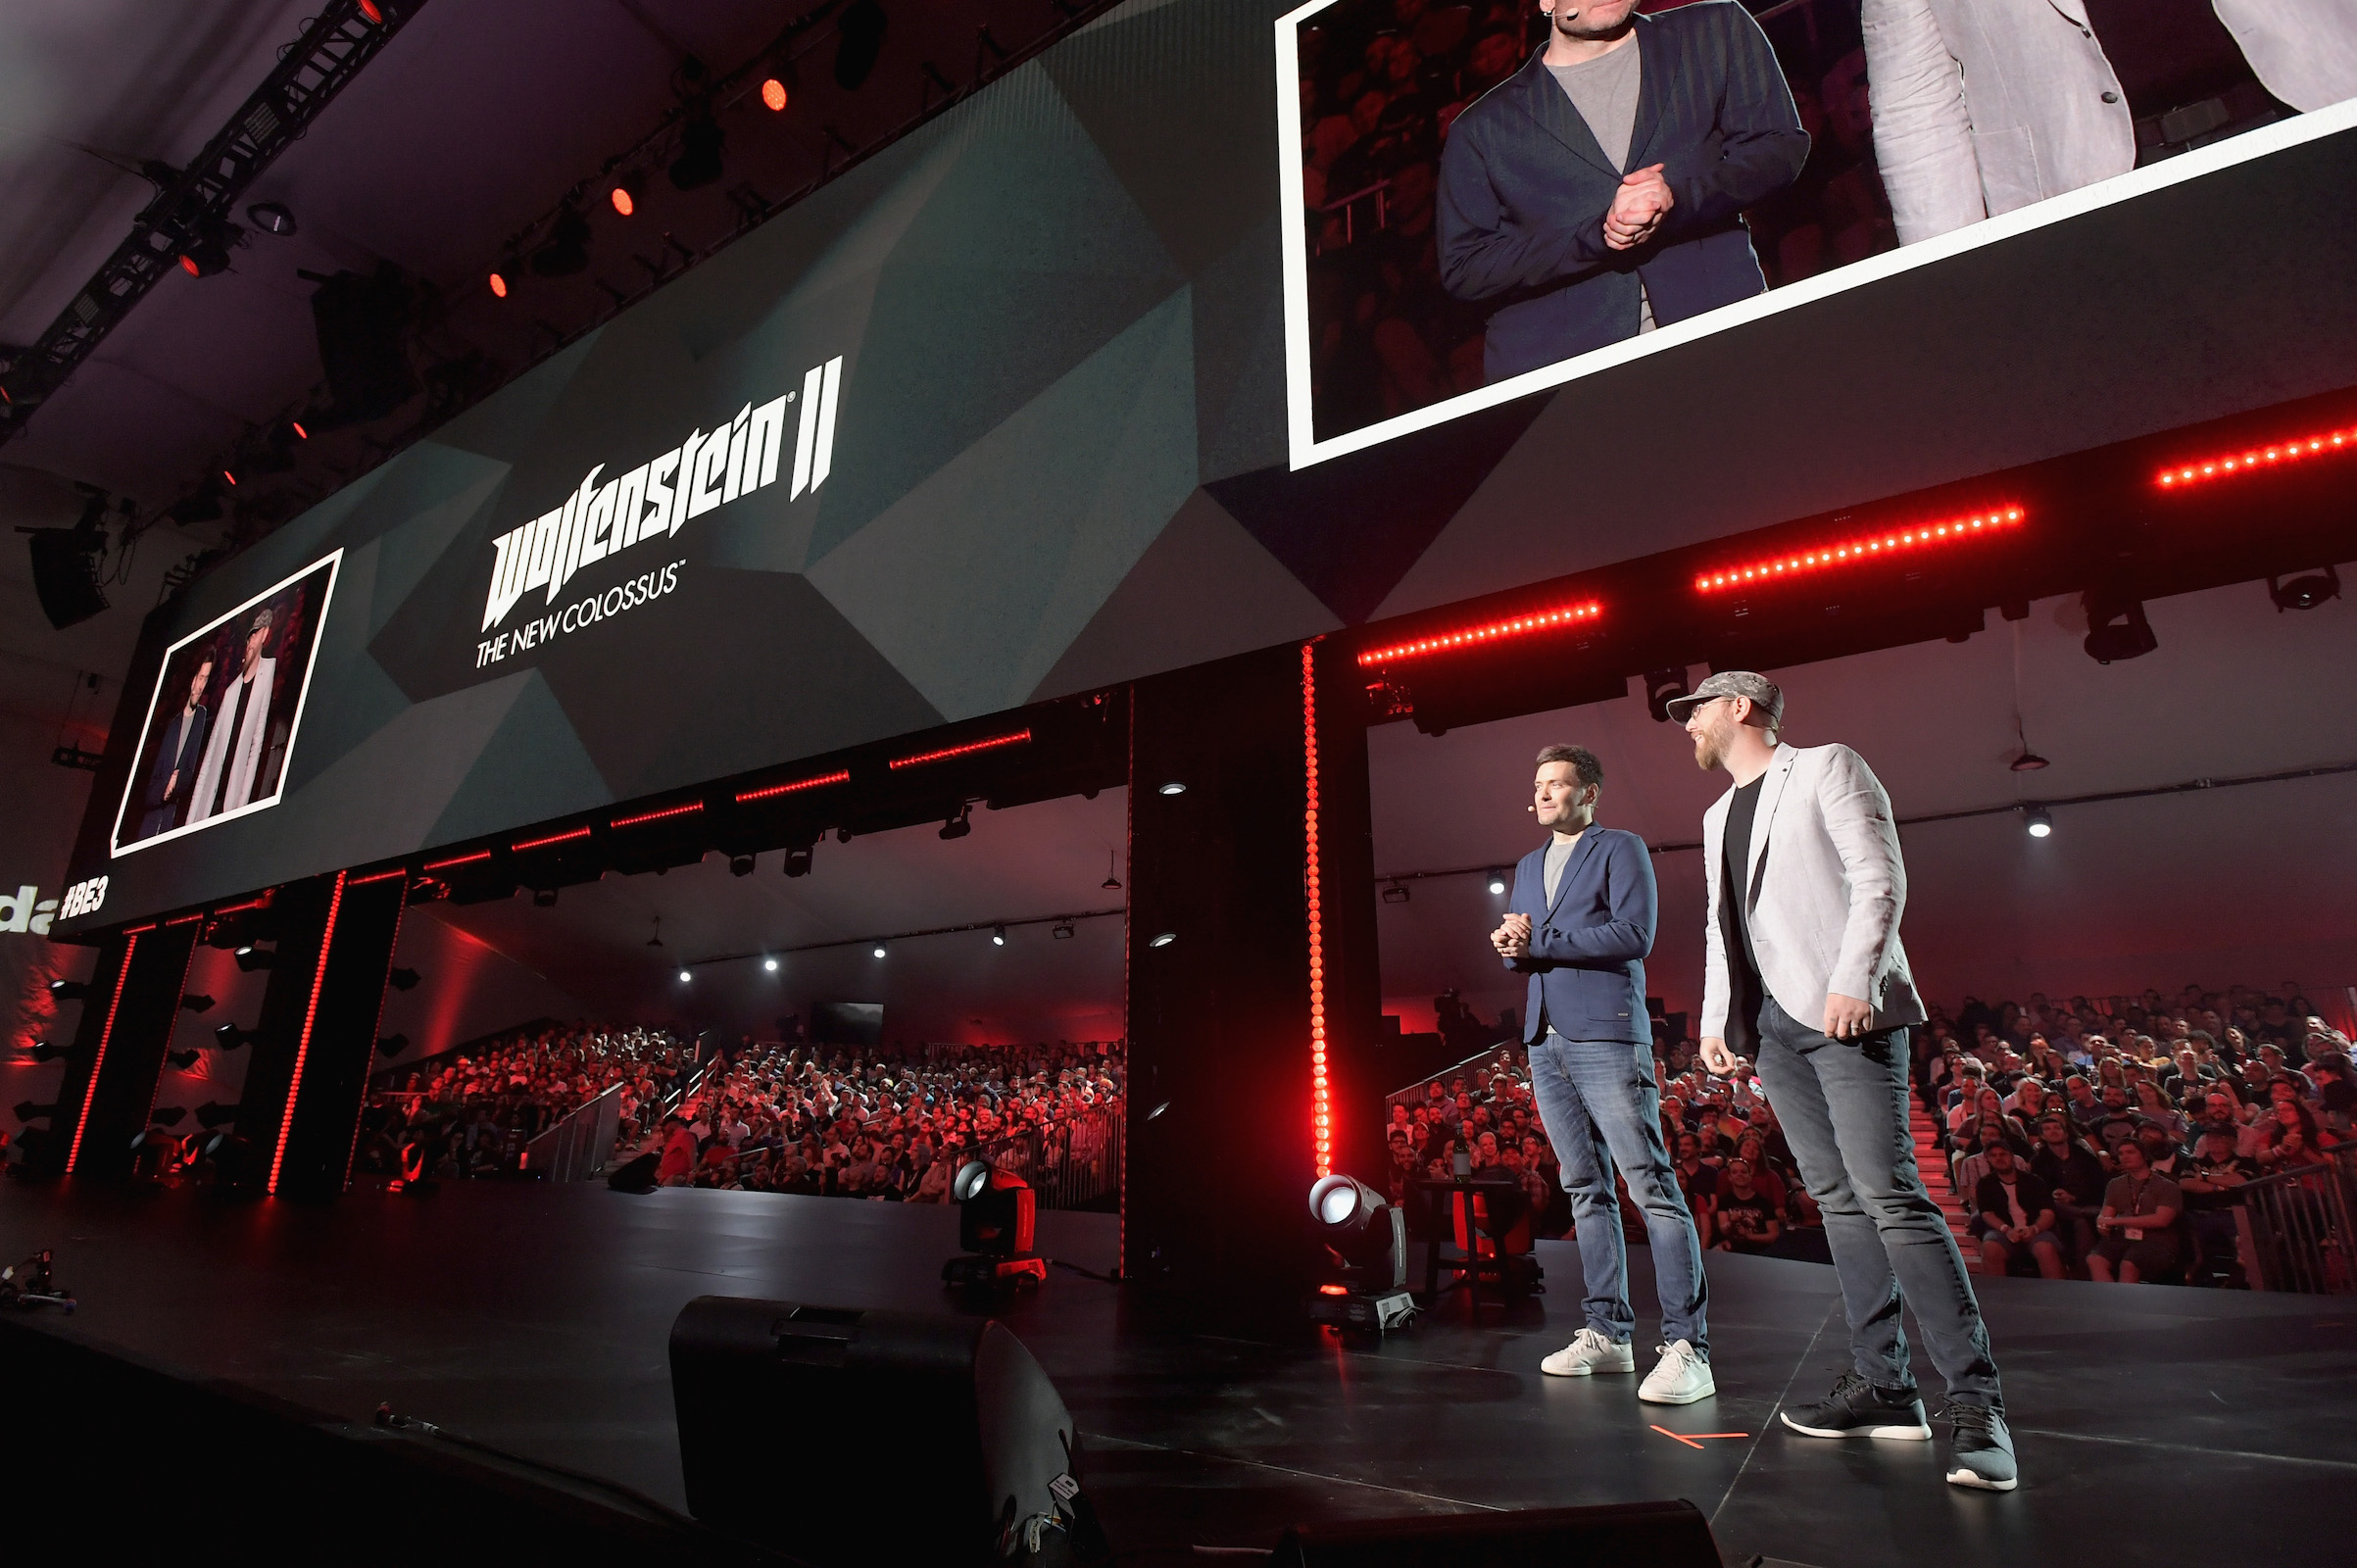 Jerk Gustafsson (L) and Jens Matthies of MachineGames present 'Wolfenstein II' onstage as Bethesda Softworks shows off new video game experiences at its E3 Showcase and at The Event Deck at LA LIVE on June 10, 2018, ahead of the Electronic Entertainment Expo (E3)  in Los Angeles.